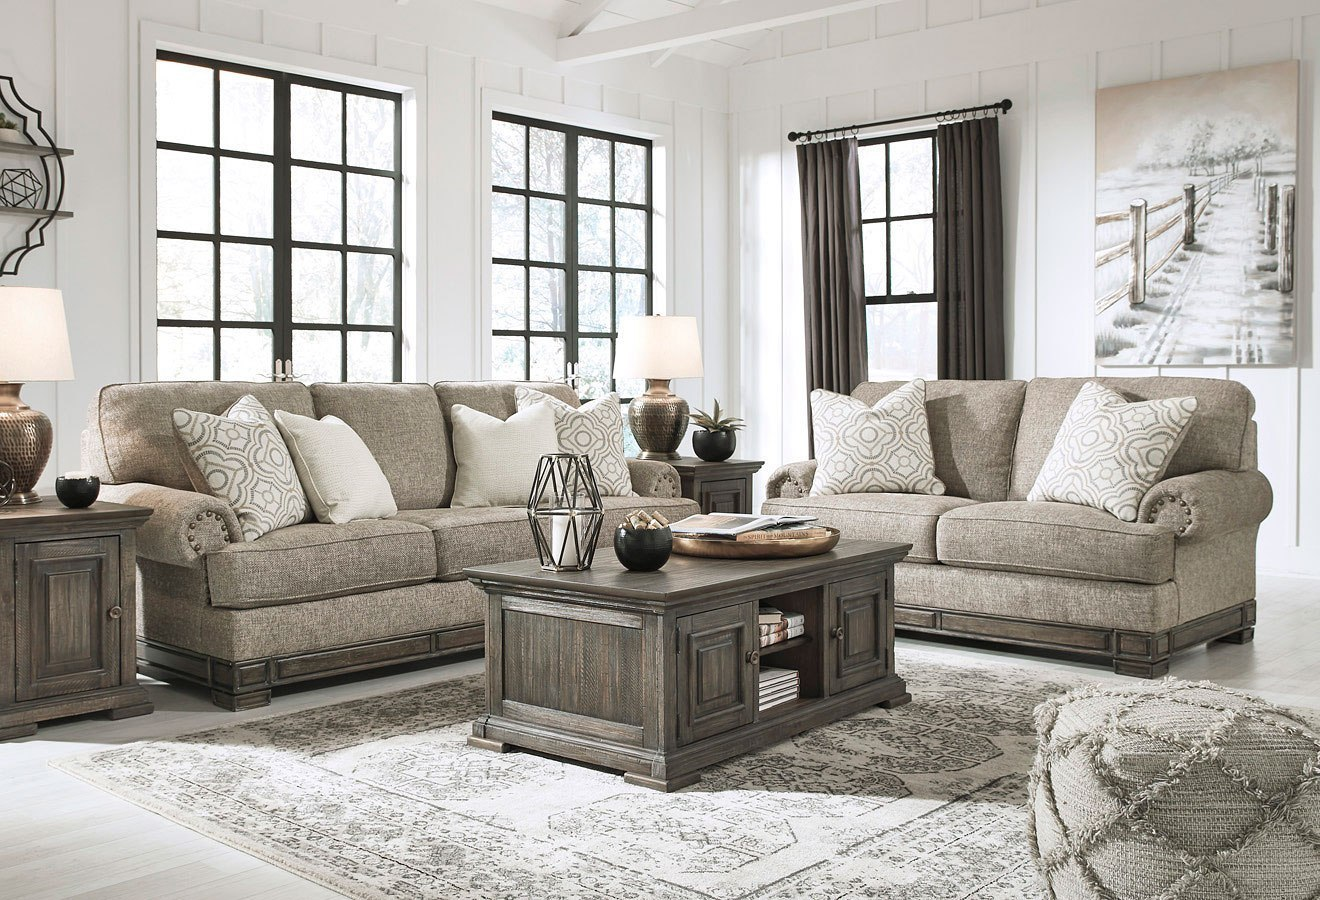 Einsgrove Living Room Set By Signature Design By Ashley Furniturepick